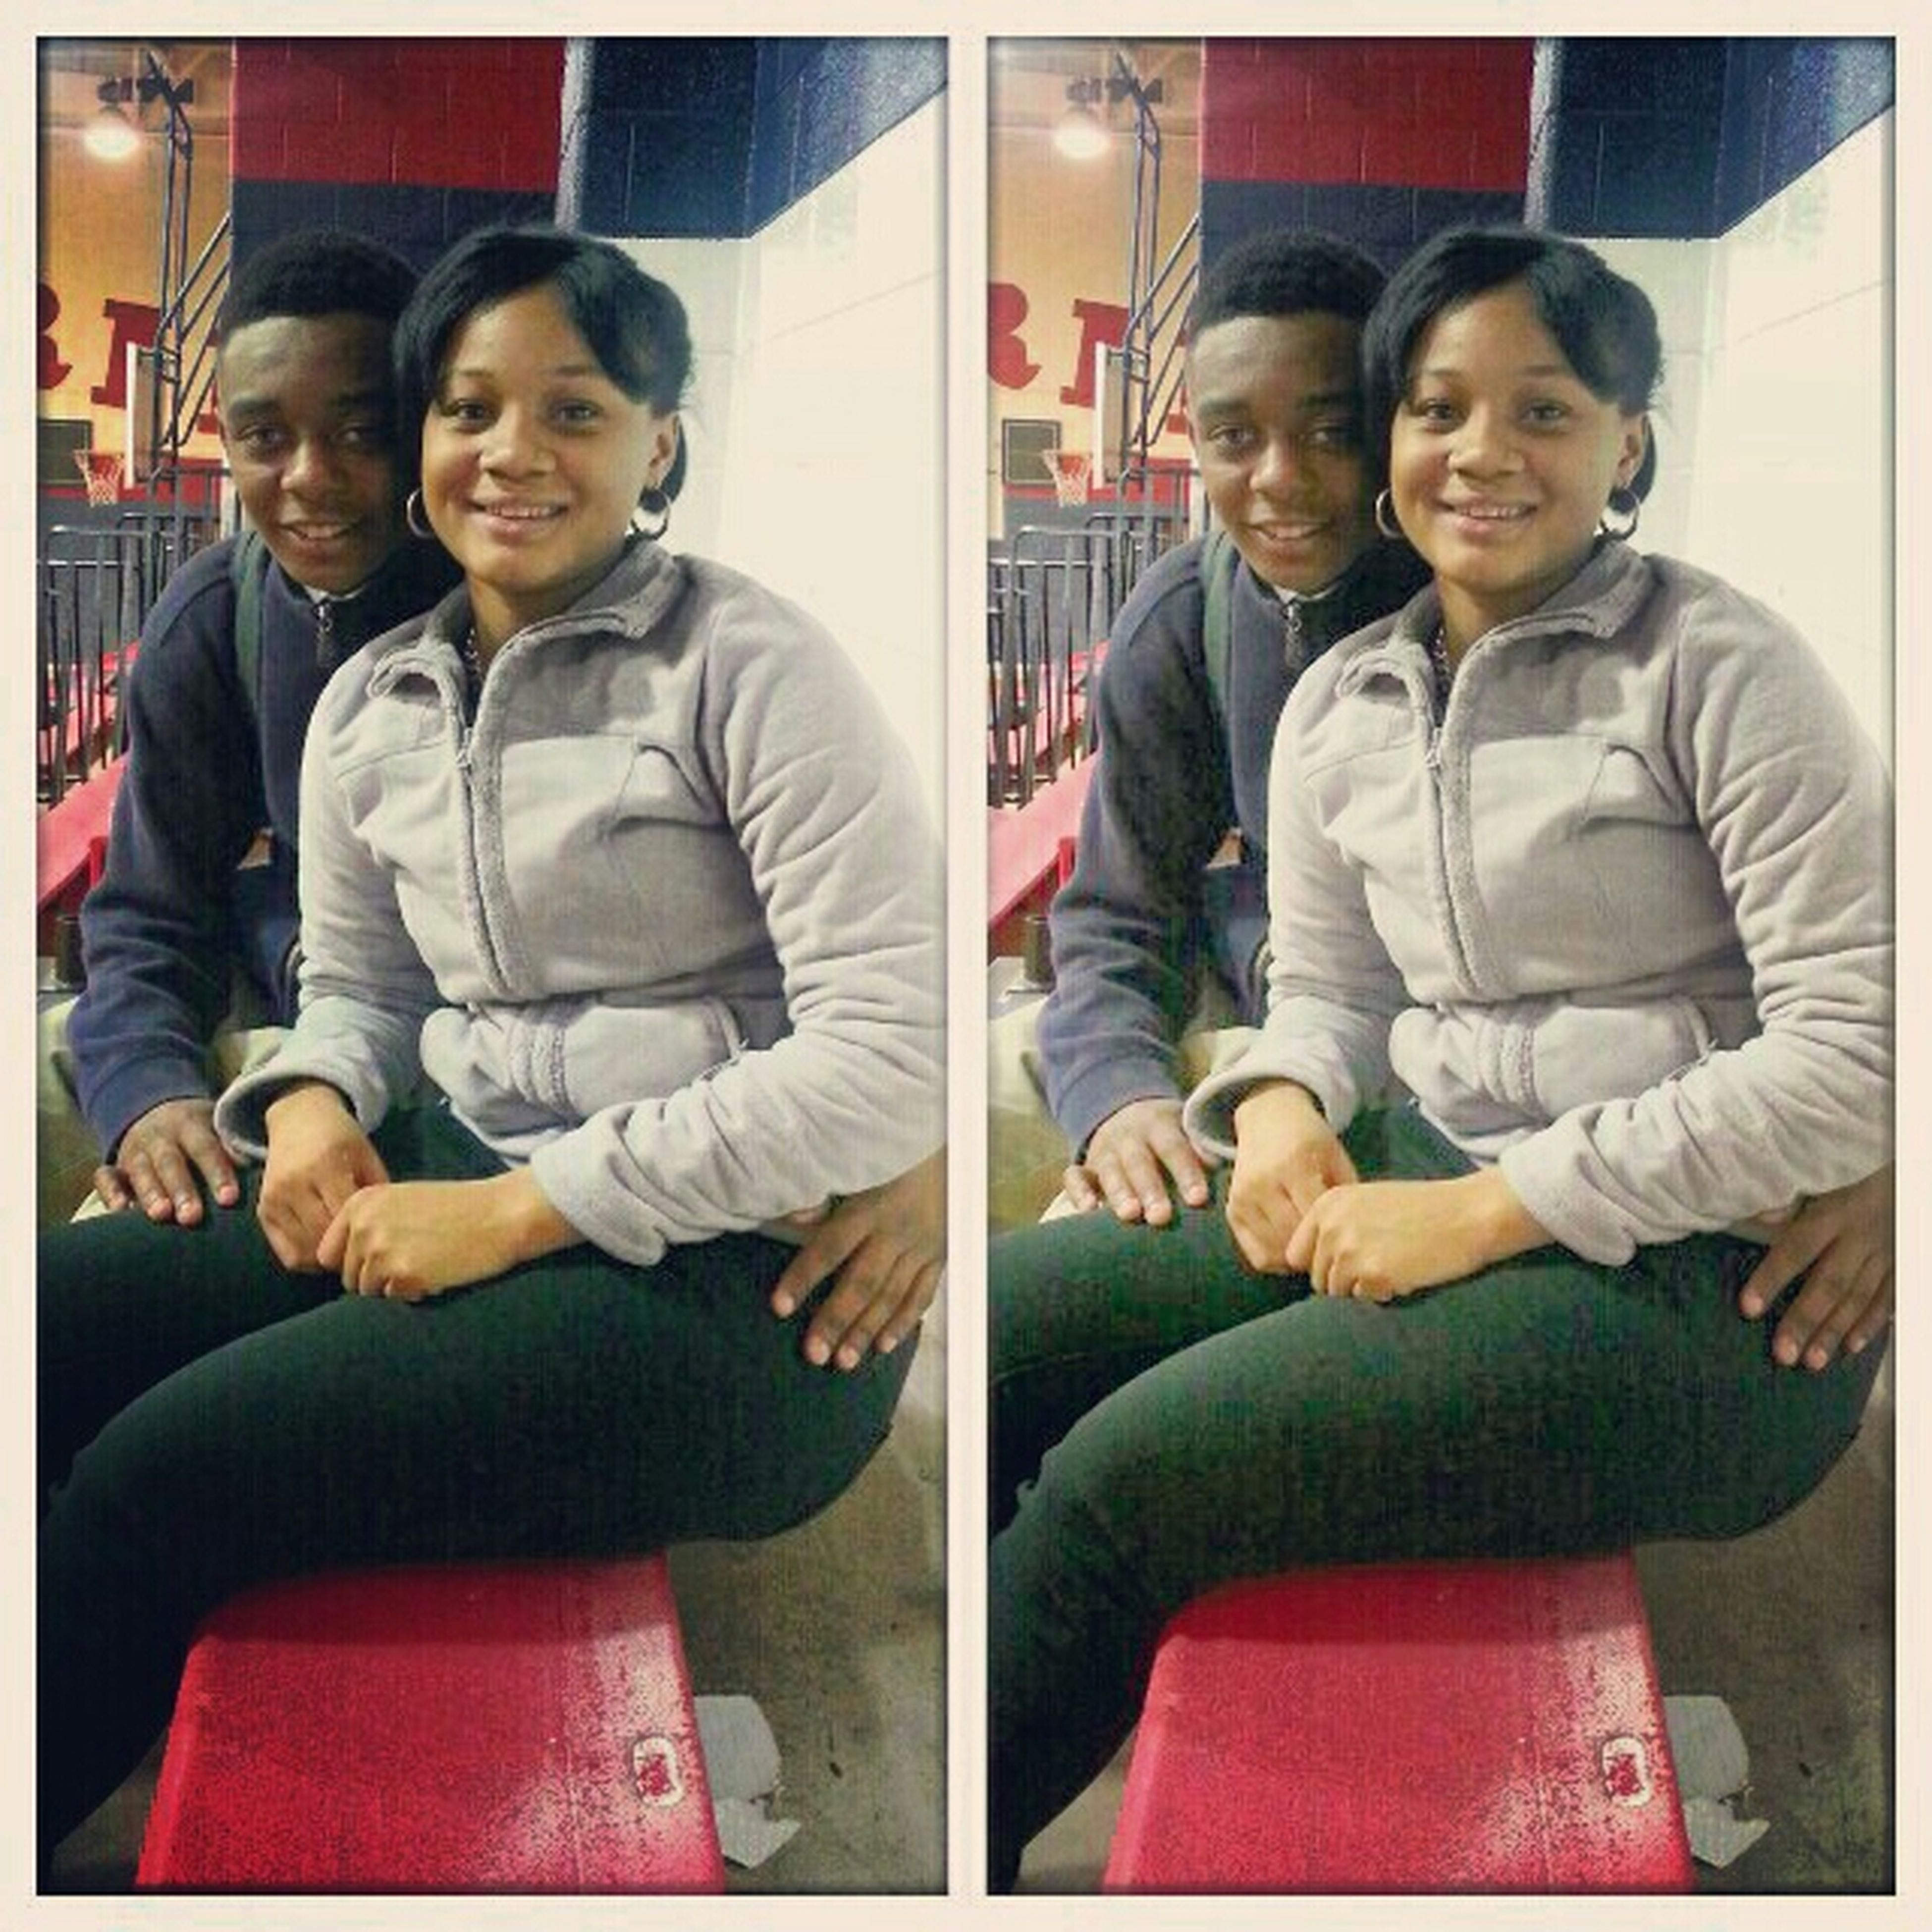 Me And Bae (: Old .